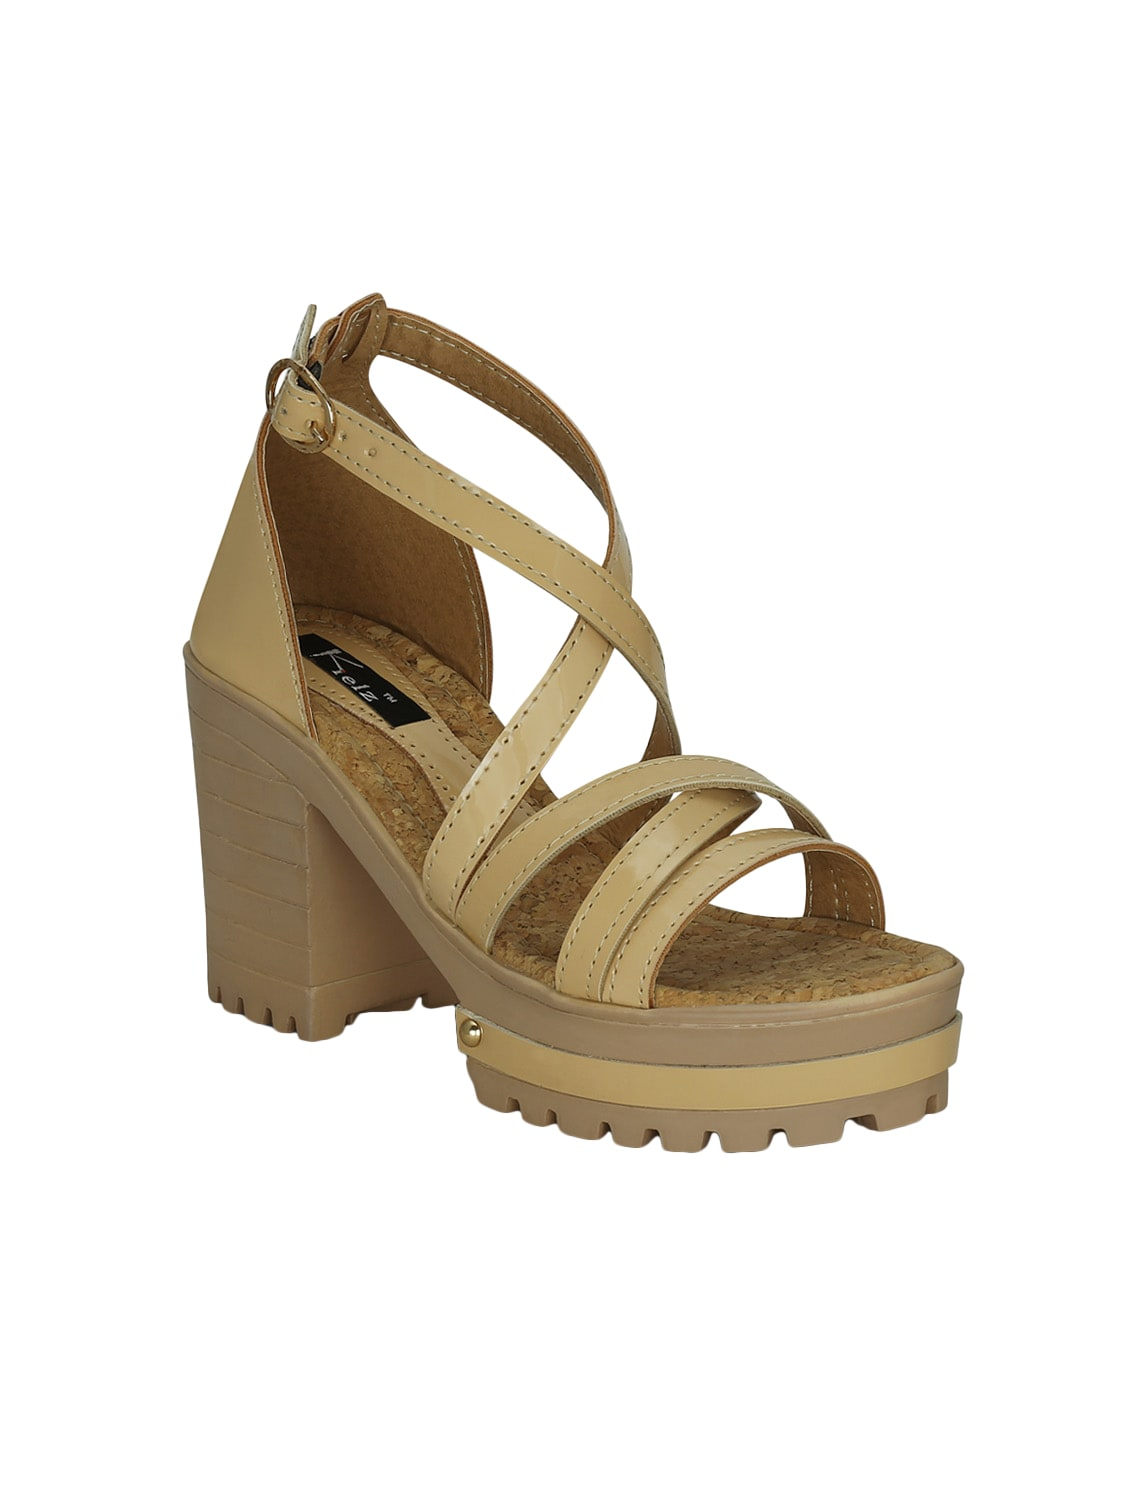 b8f570c9912 Buy Beige Synthetic   Mesh Platforms Sandals by Kielz - Online ...